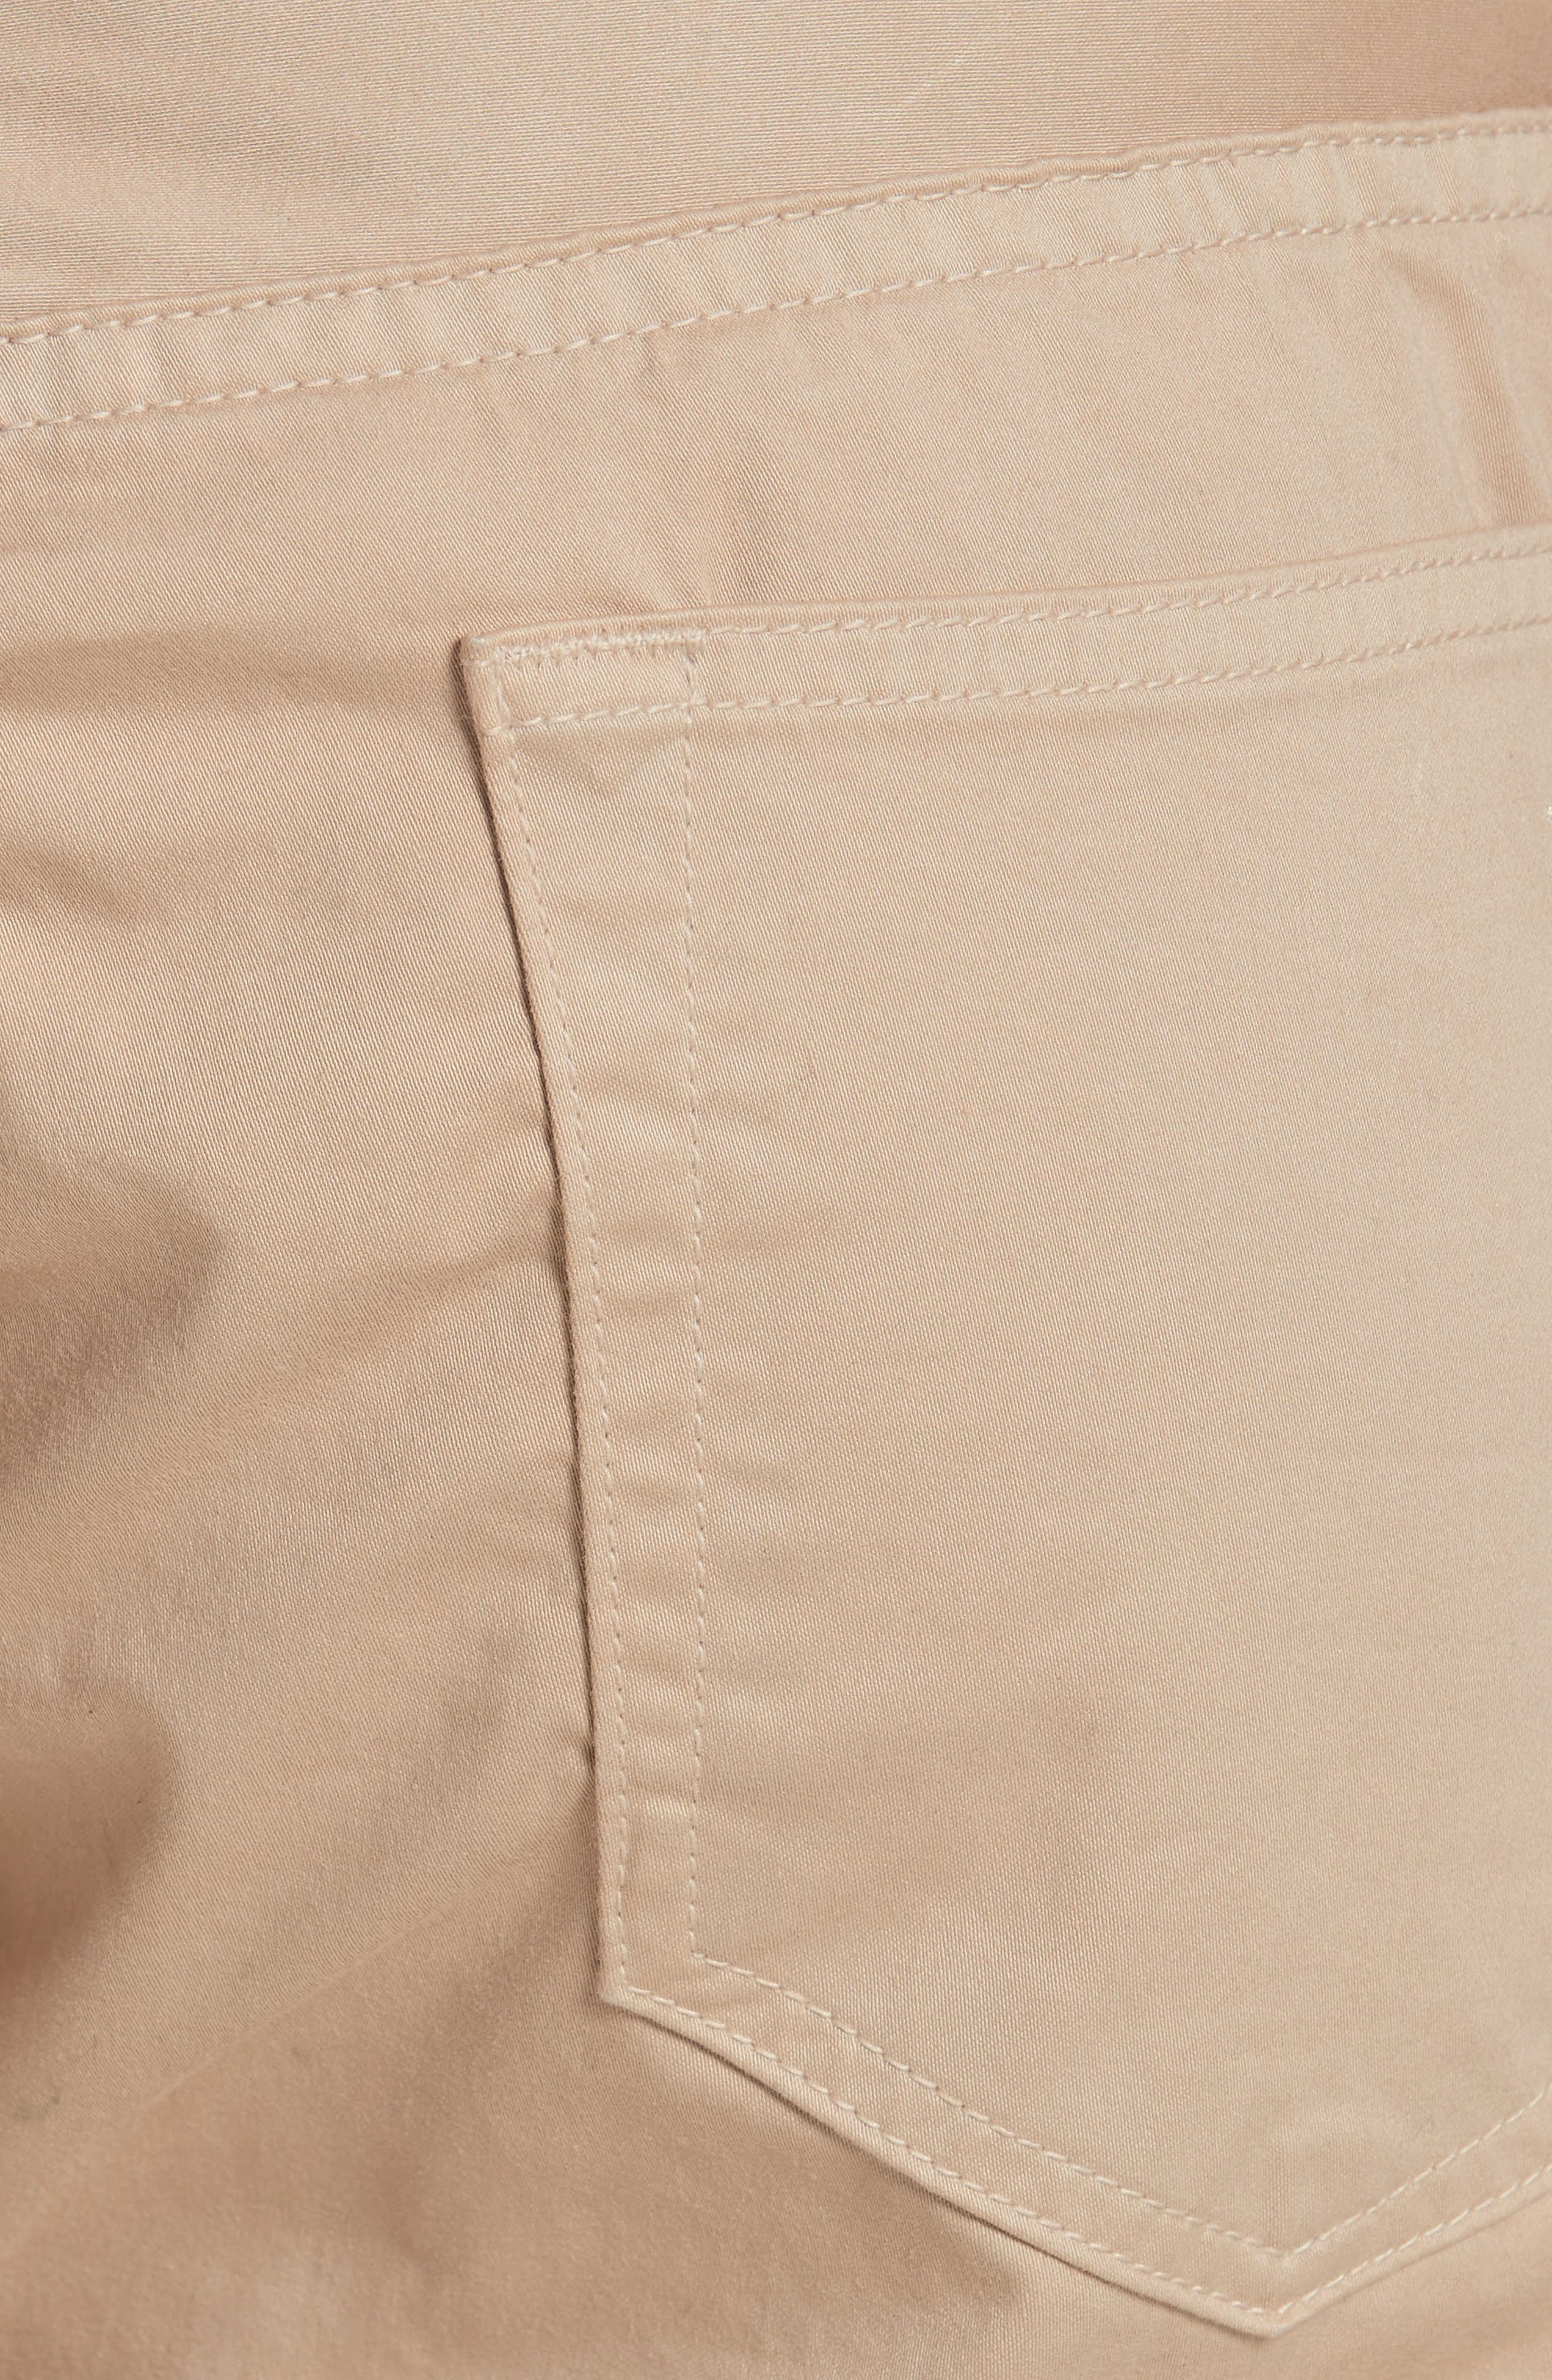 Fit 2 Five-Pocket Twill Pants,                             Alternate thumbnail 5, color,                             Beige